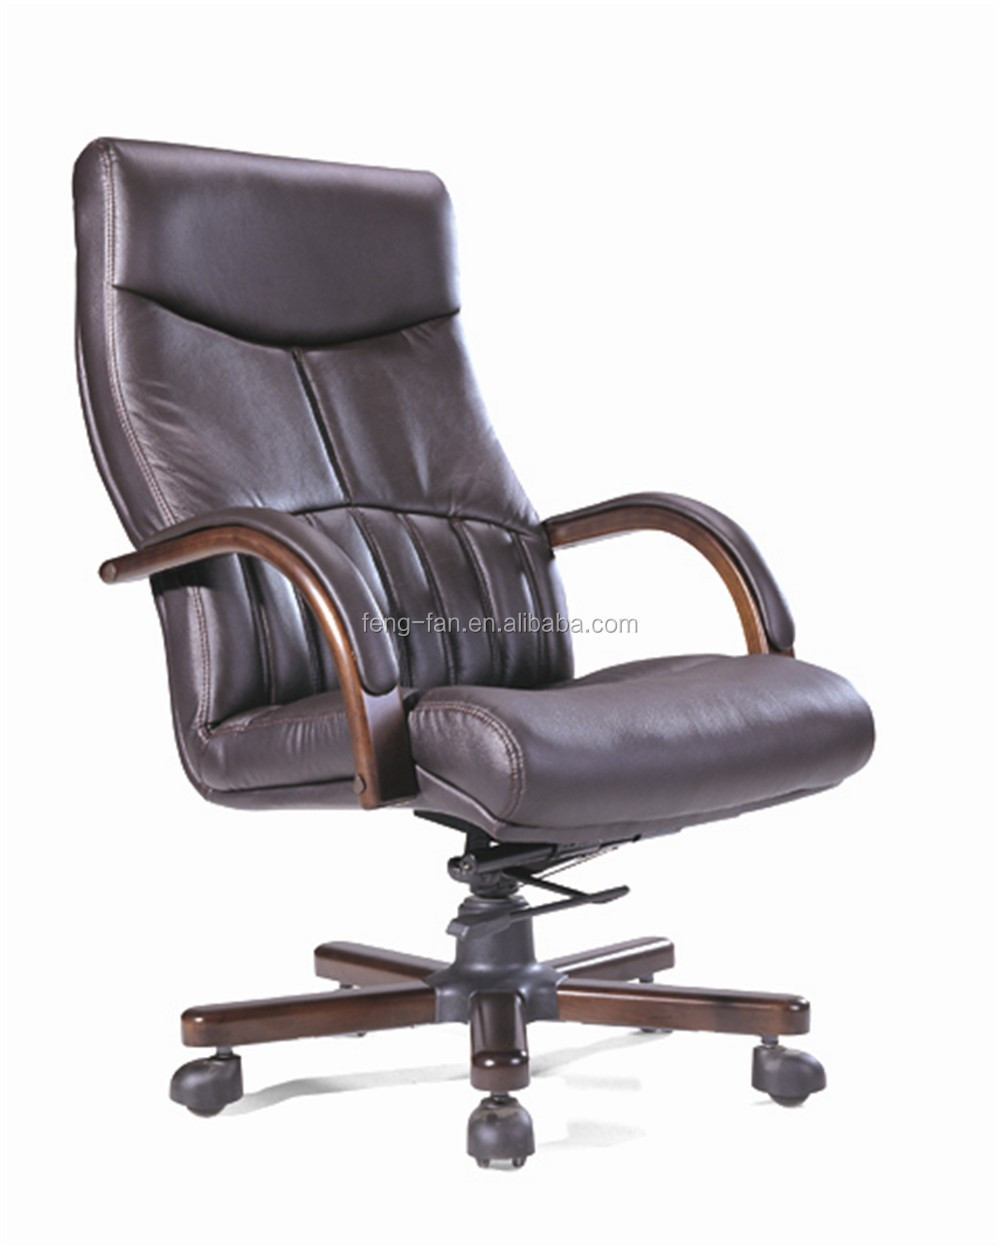 PU leather high back computer office chair with wood base 9116